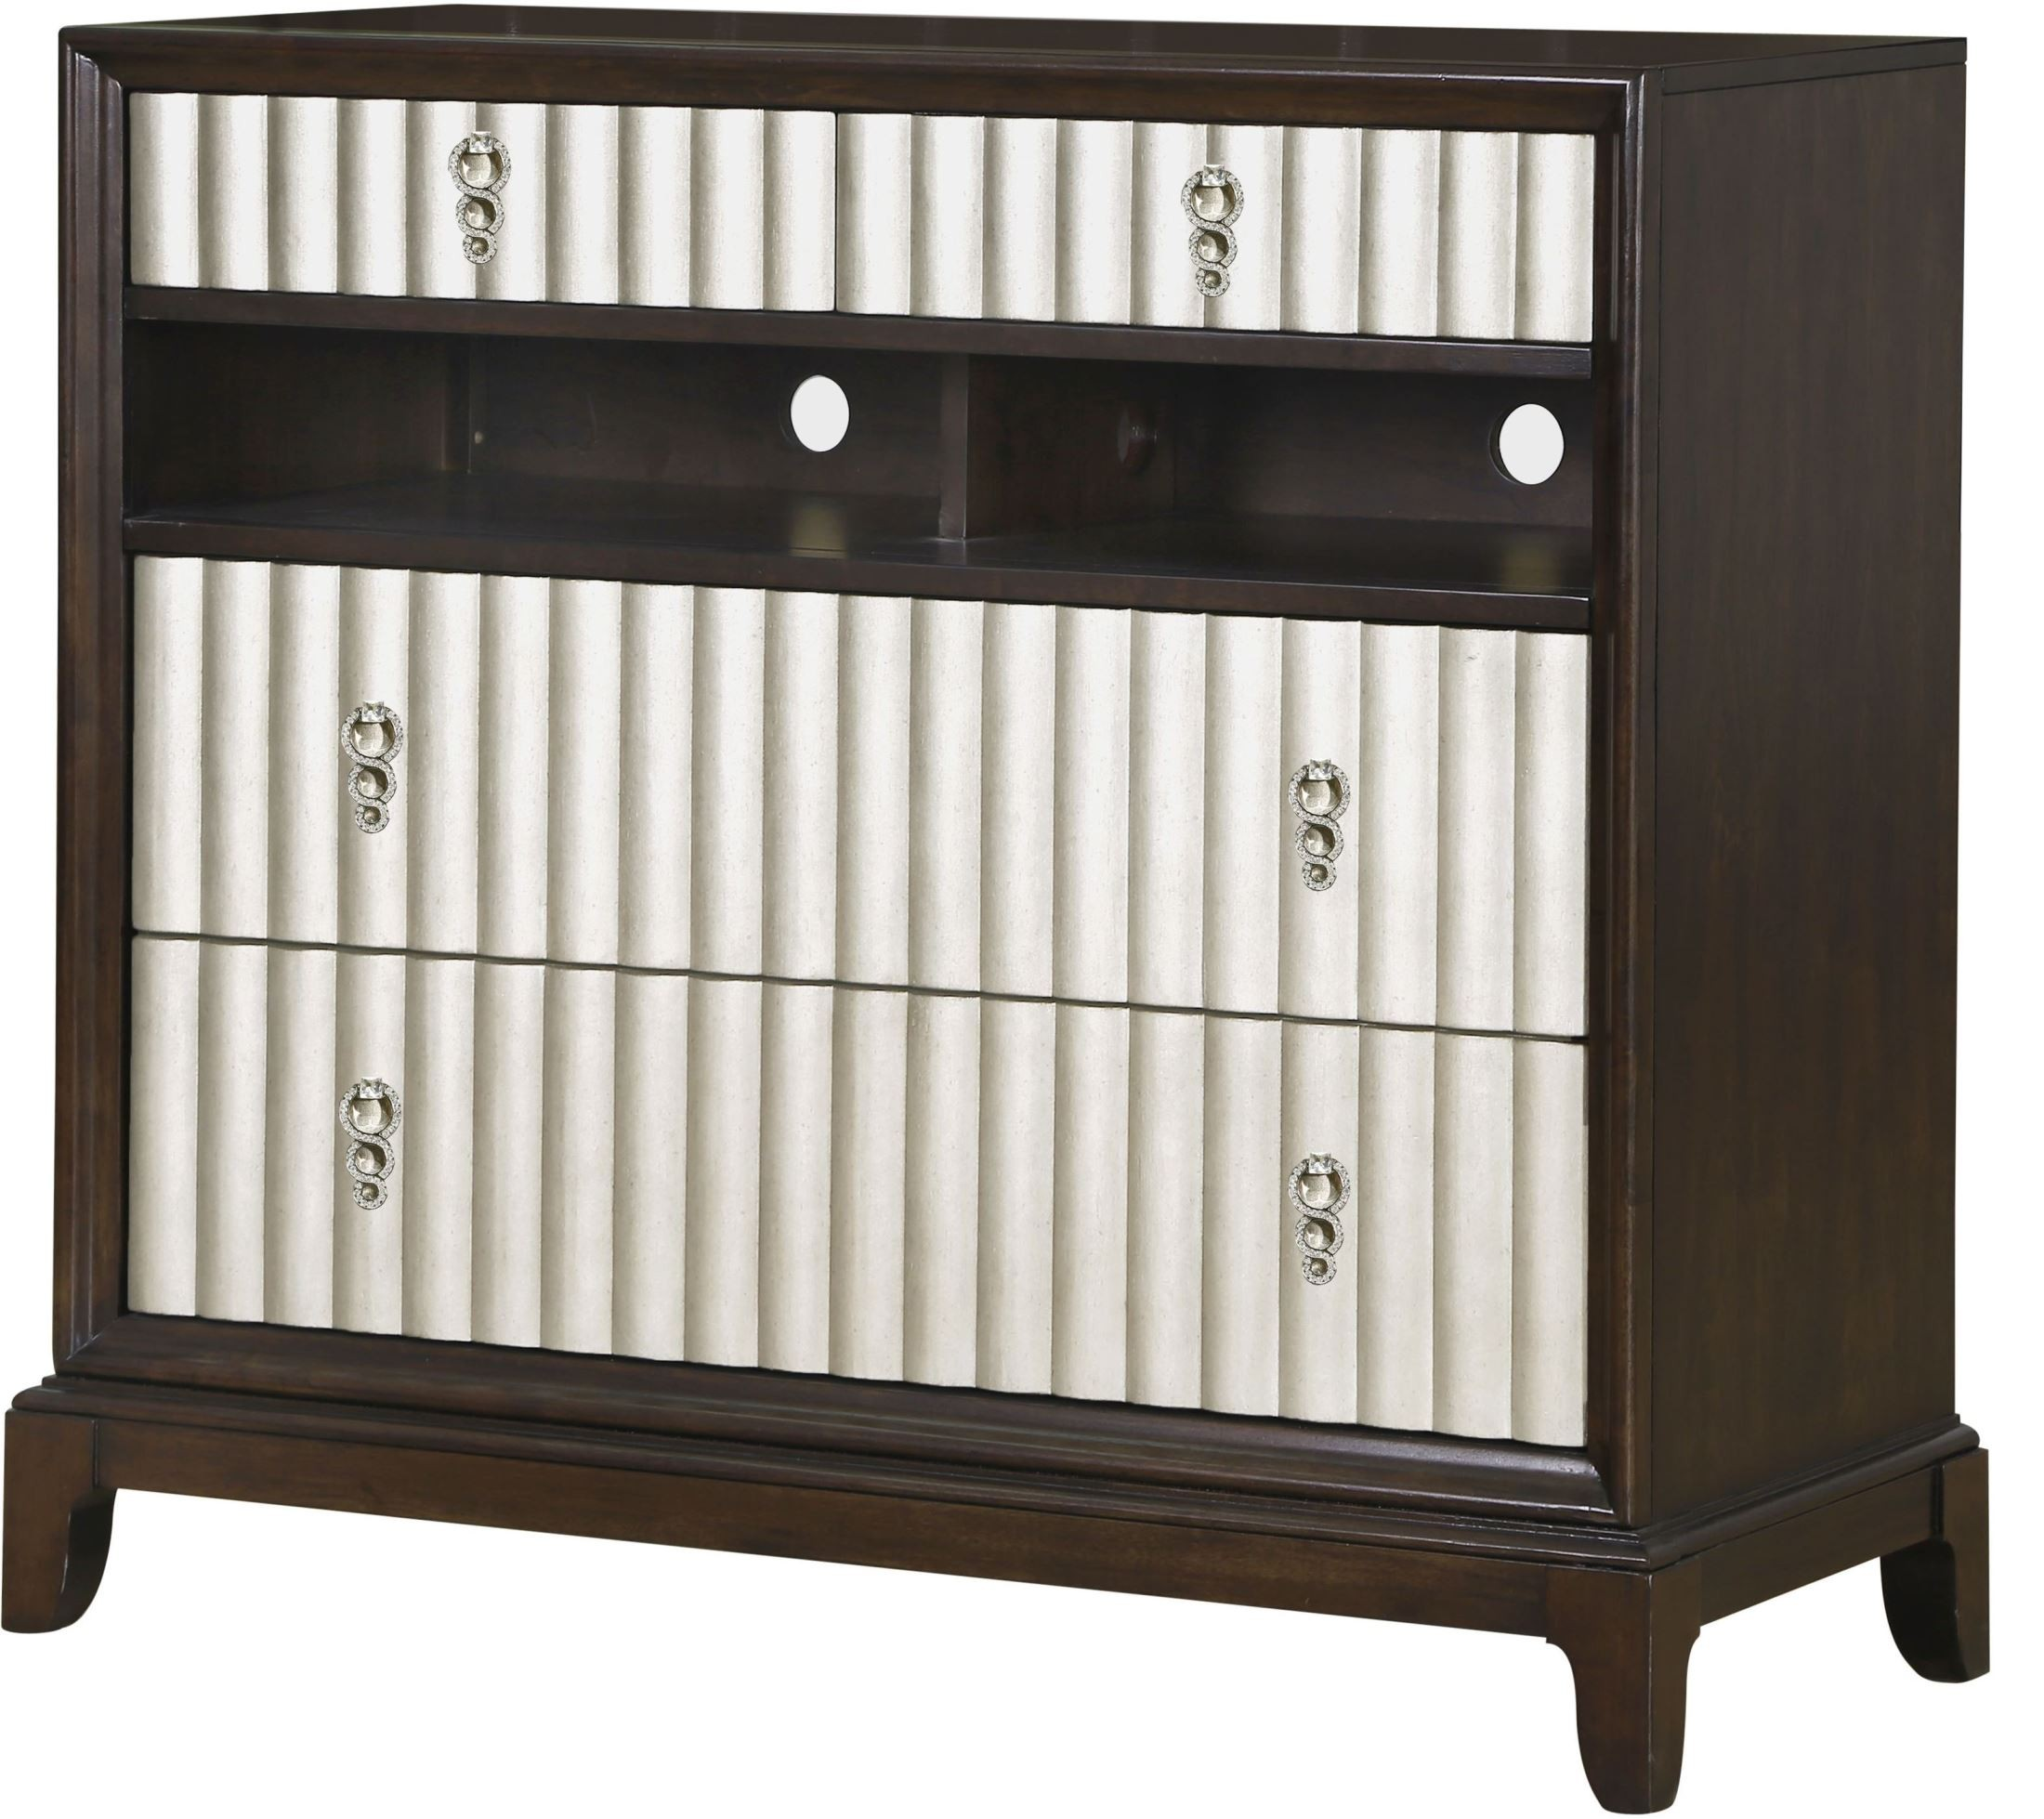 Gramercy Sable Wood Media Chest From Magnussen Home B3564 36 Coleman Furniture